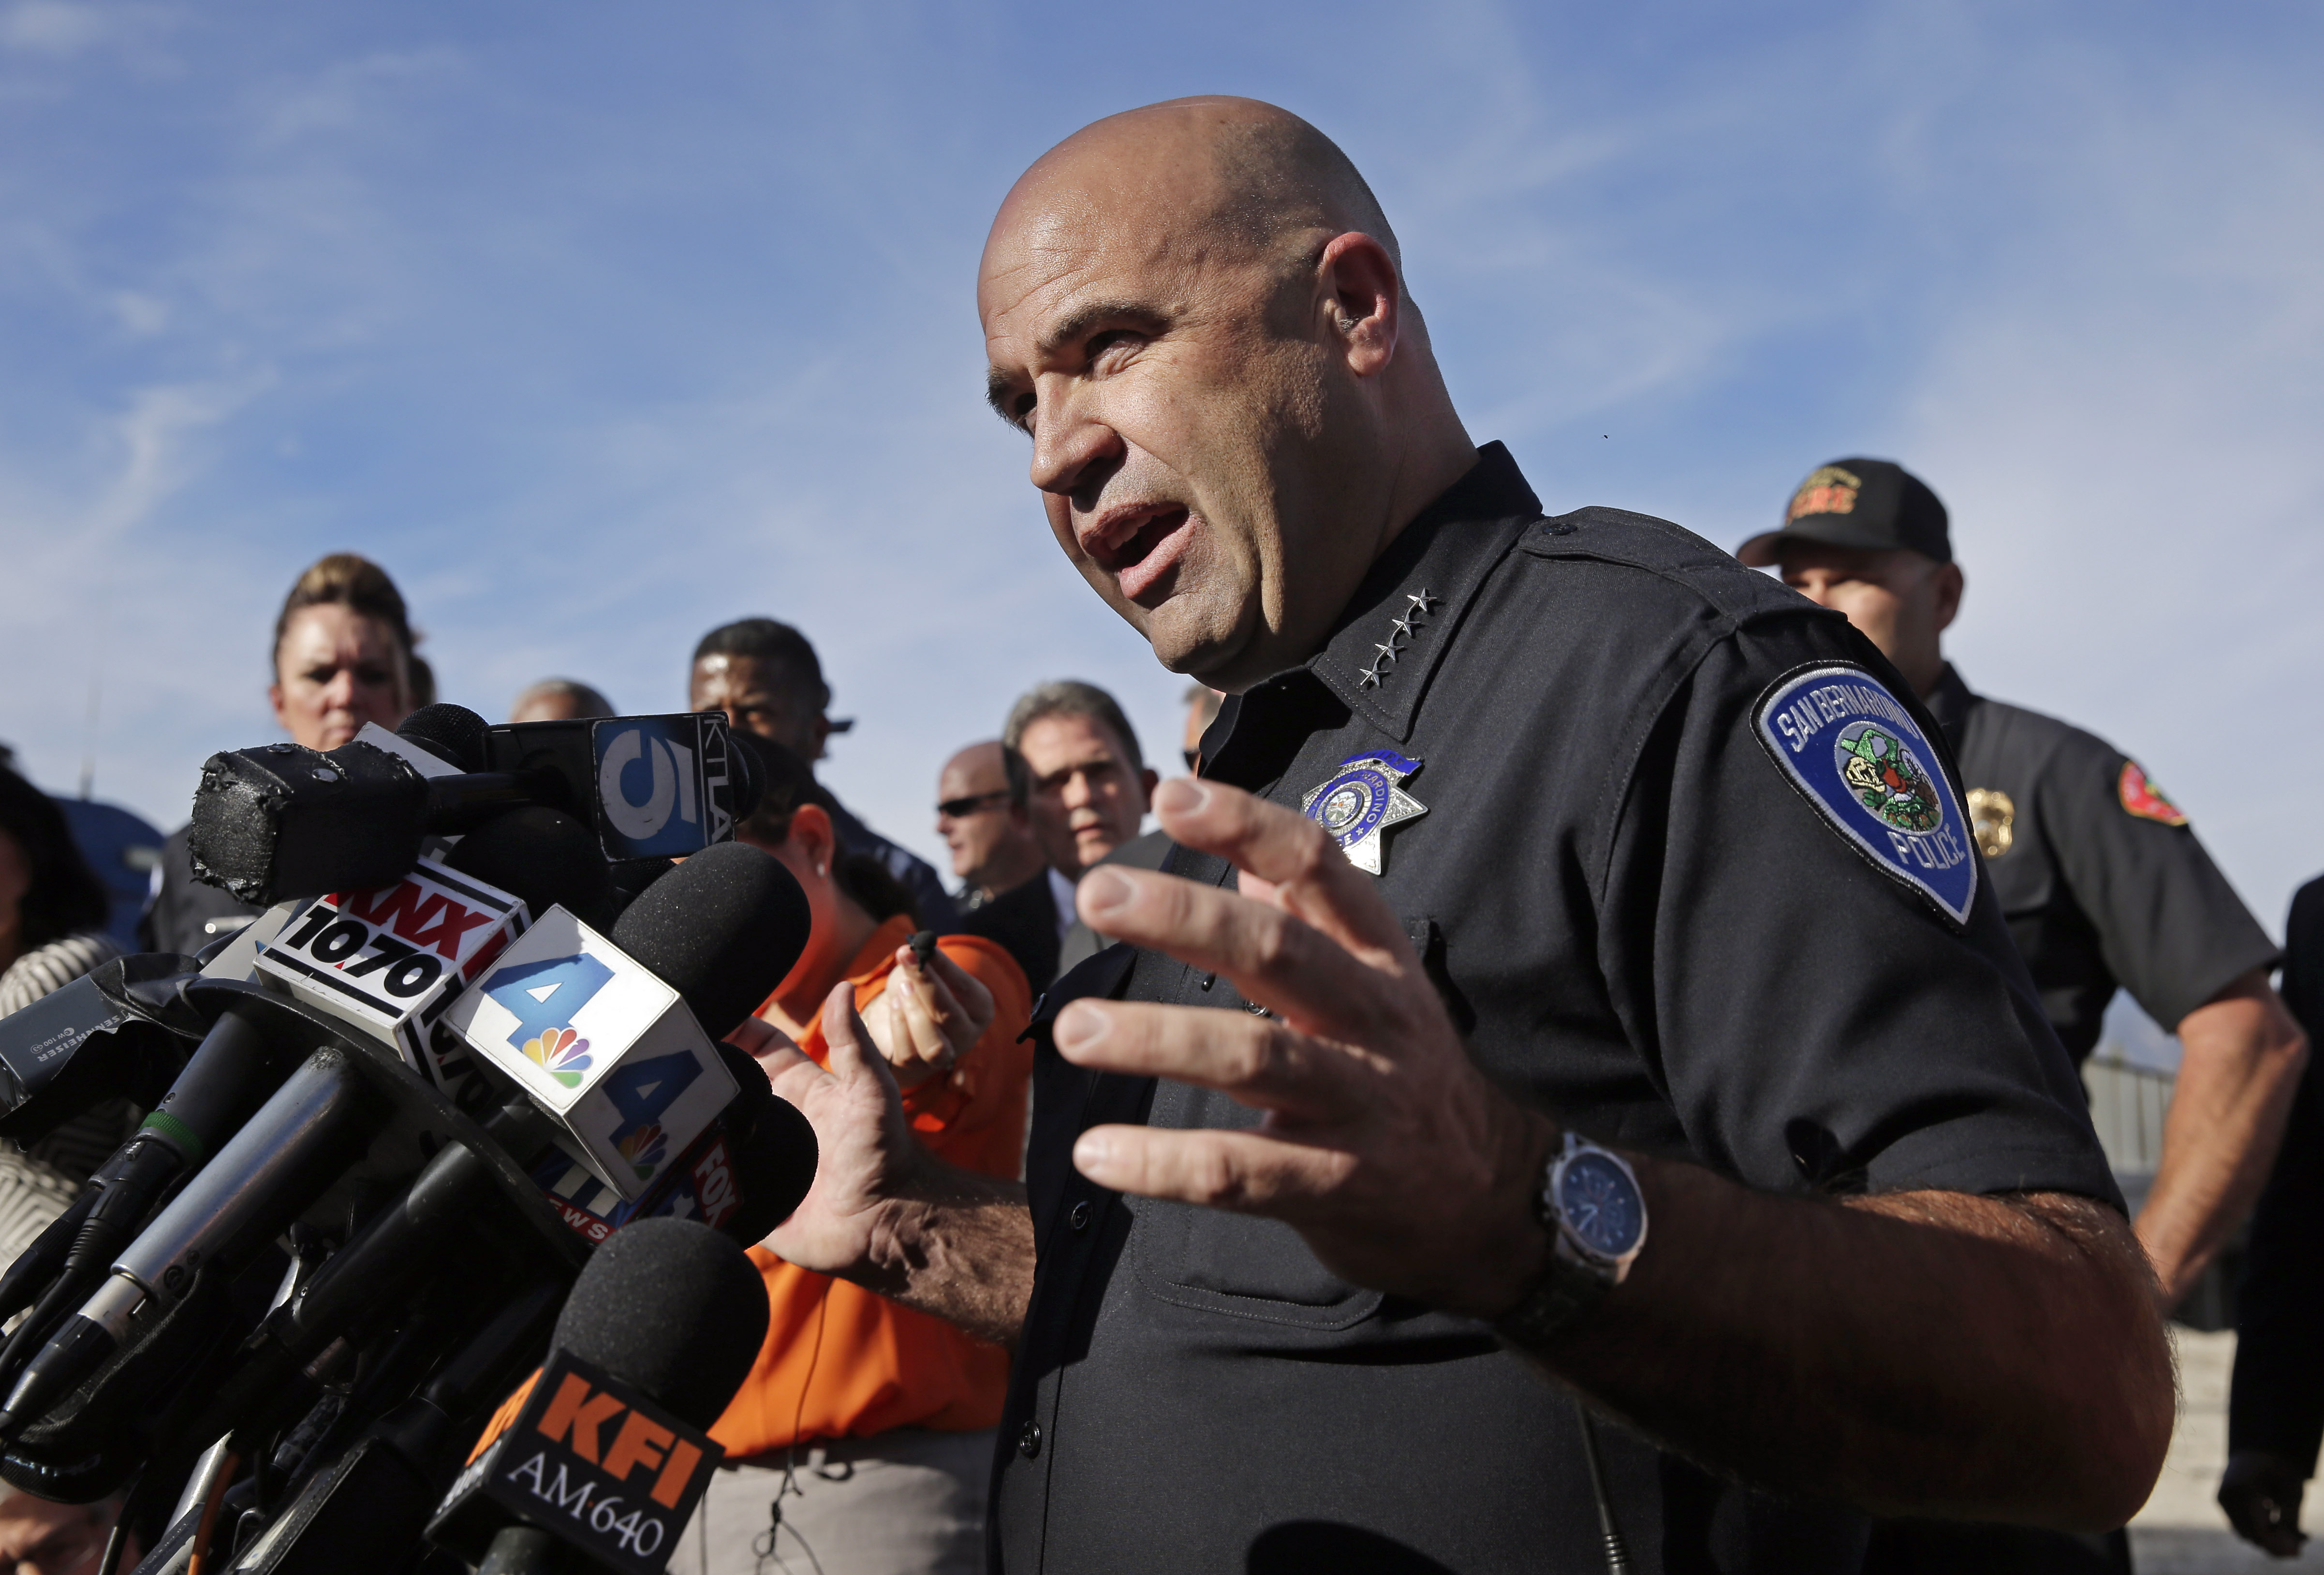 San Bernardino Police Chief Jarrod Burguan talks to the media near the the site of a mass shooting on Wednesday, Dec. 2, 2015 in San Bernardino, Calif. One or more gunmen opened fire Wednesday at a Southern California social services center, shooting several people as others locked themselves in their offices, desperately waiting to be rescued by police, witnesses and authorities said. Authorities said the shooting rampage killed multiple people and wounded others. (AP Photo/Chris Carlson)